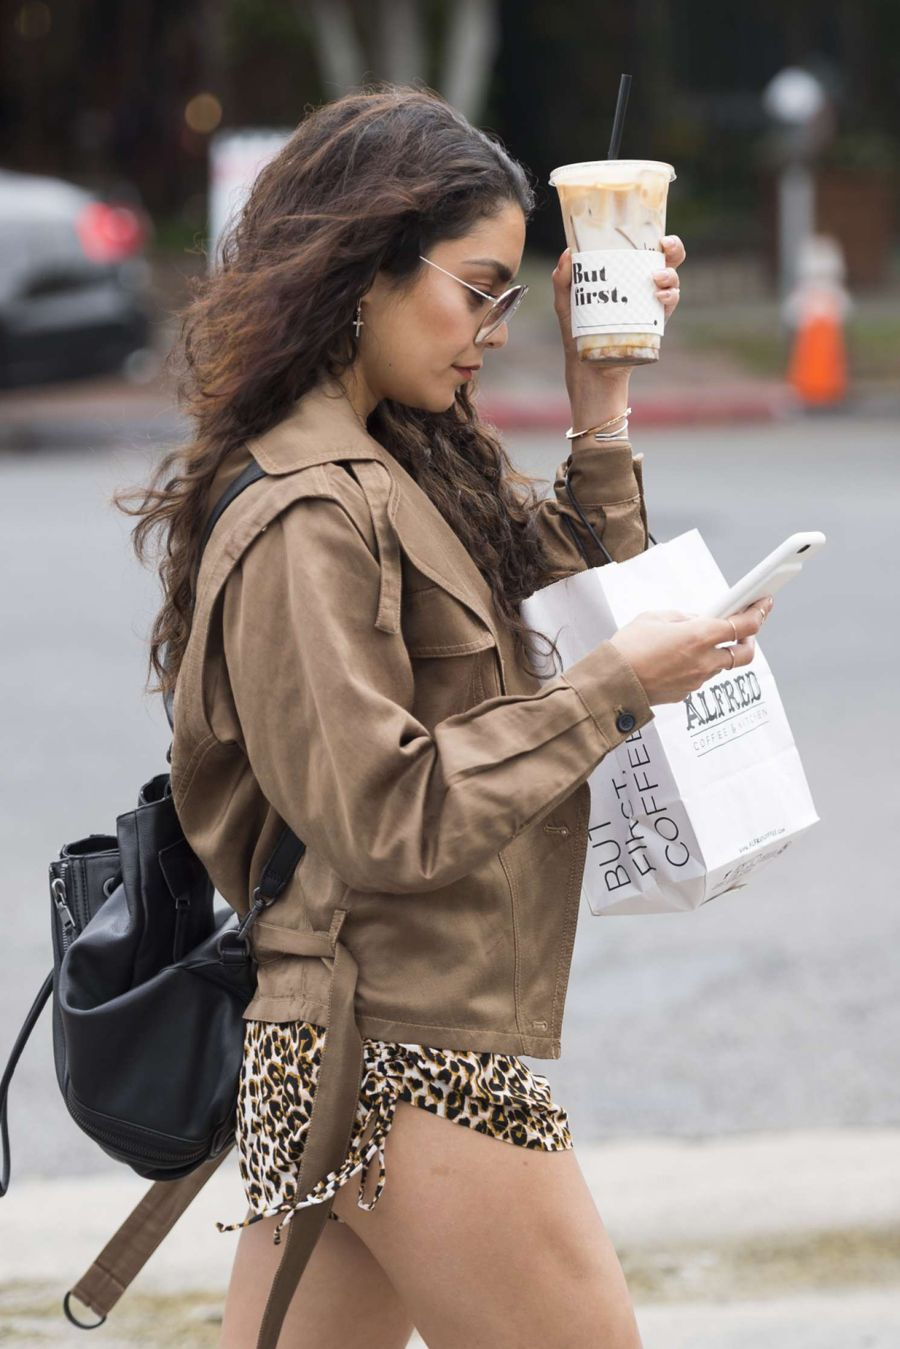 Vanessa Hudgens - Hot on street while getting coffee